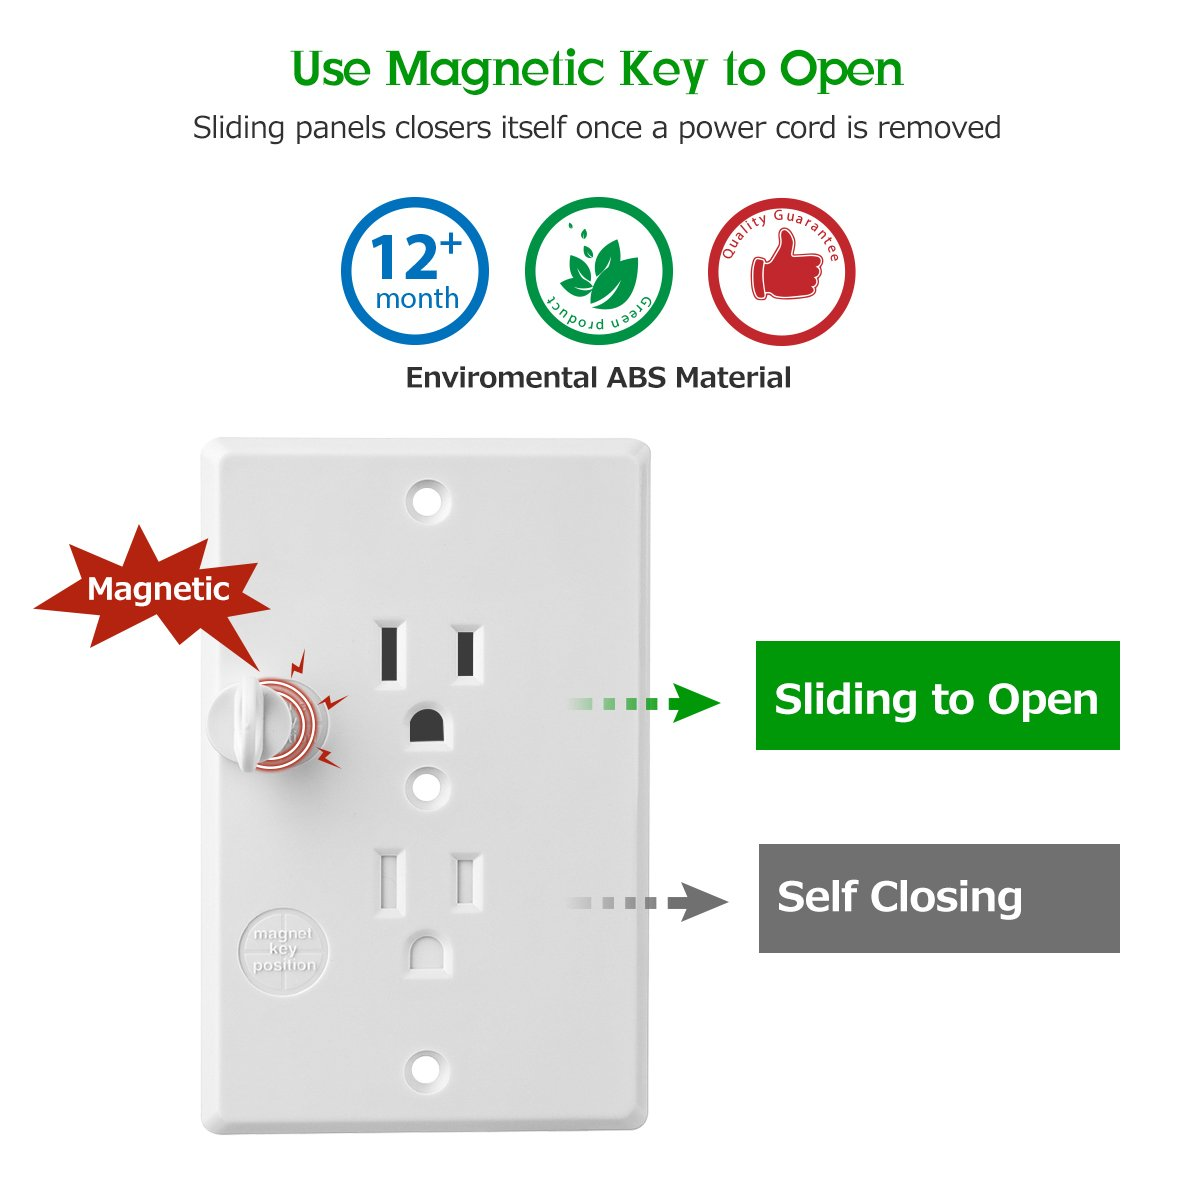 Baban Upgrade Baby Socket Cover Set with Magnetic Key Standard US Regulation Baby Safety Outlet Cover Universal Self-Closing Child Guards Socket Plugs Protector Flame Retardant ABS